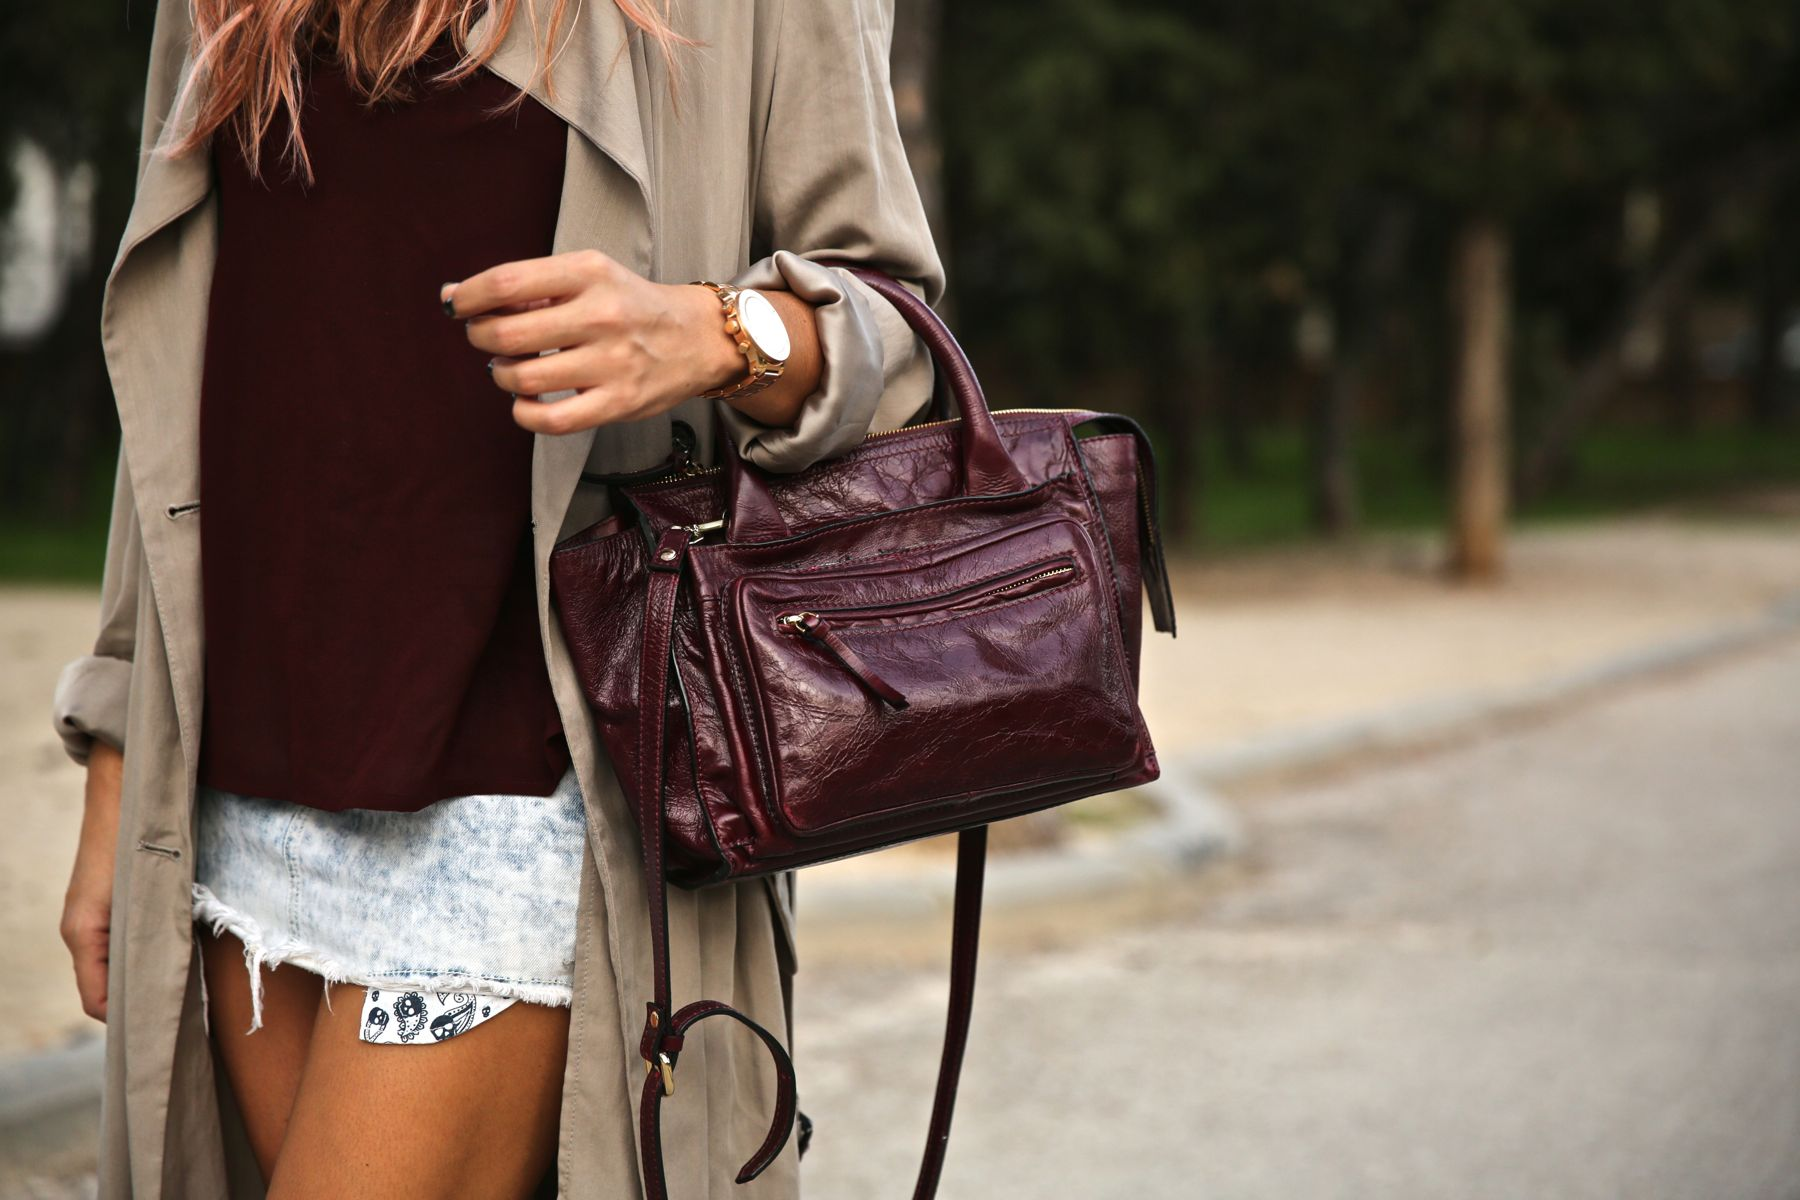 trendy_taste-look-outfit-street_style-ootd-blog-blogger-fashion_spain-moda_españa-boho-hippie-gabardina-botines_camperos-booties-gabardina-raincoat-burgundy_bag-zara-2